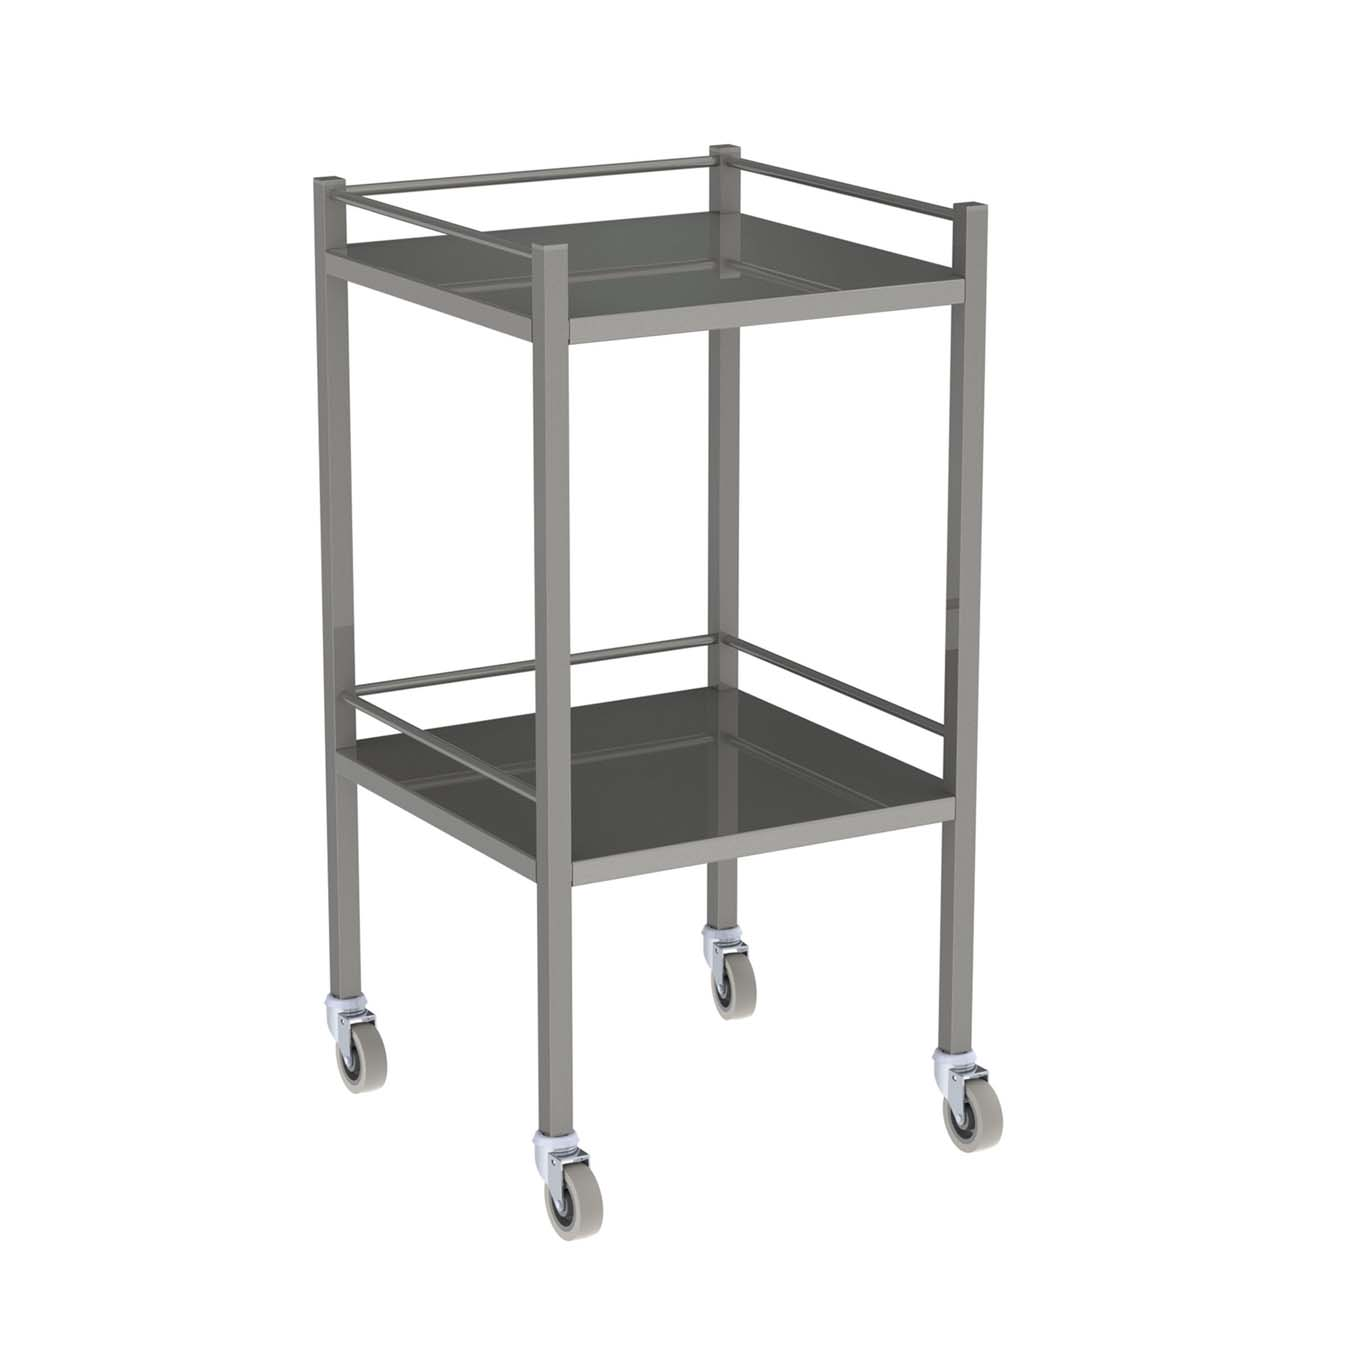 AX033_1_Dressing-Trolley-With-Rail-Stainless-Steel_490x490x900mm_1